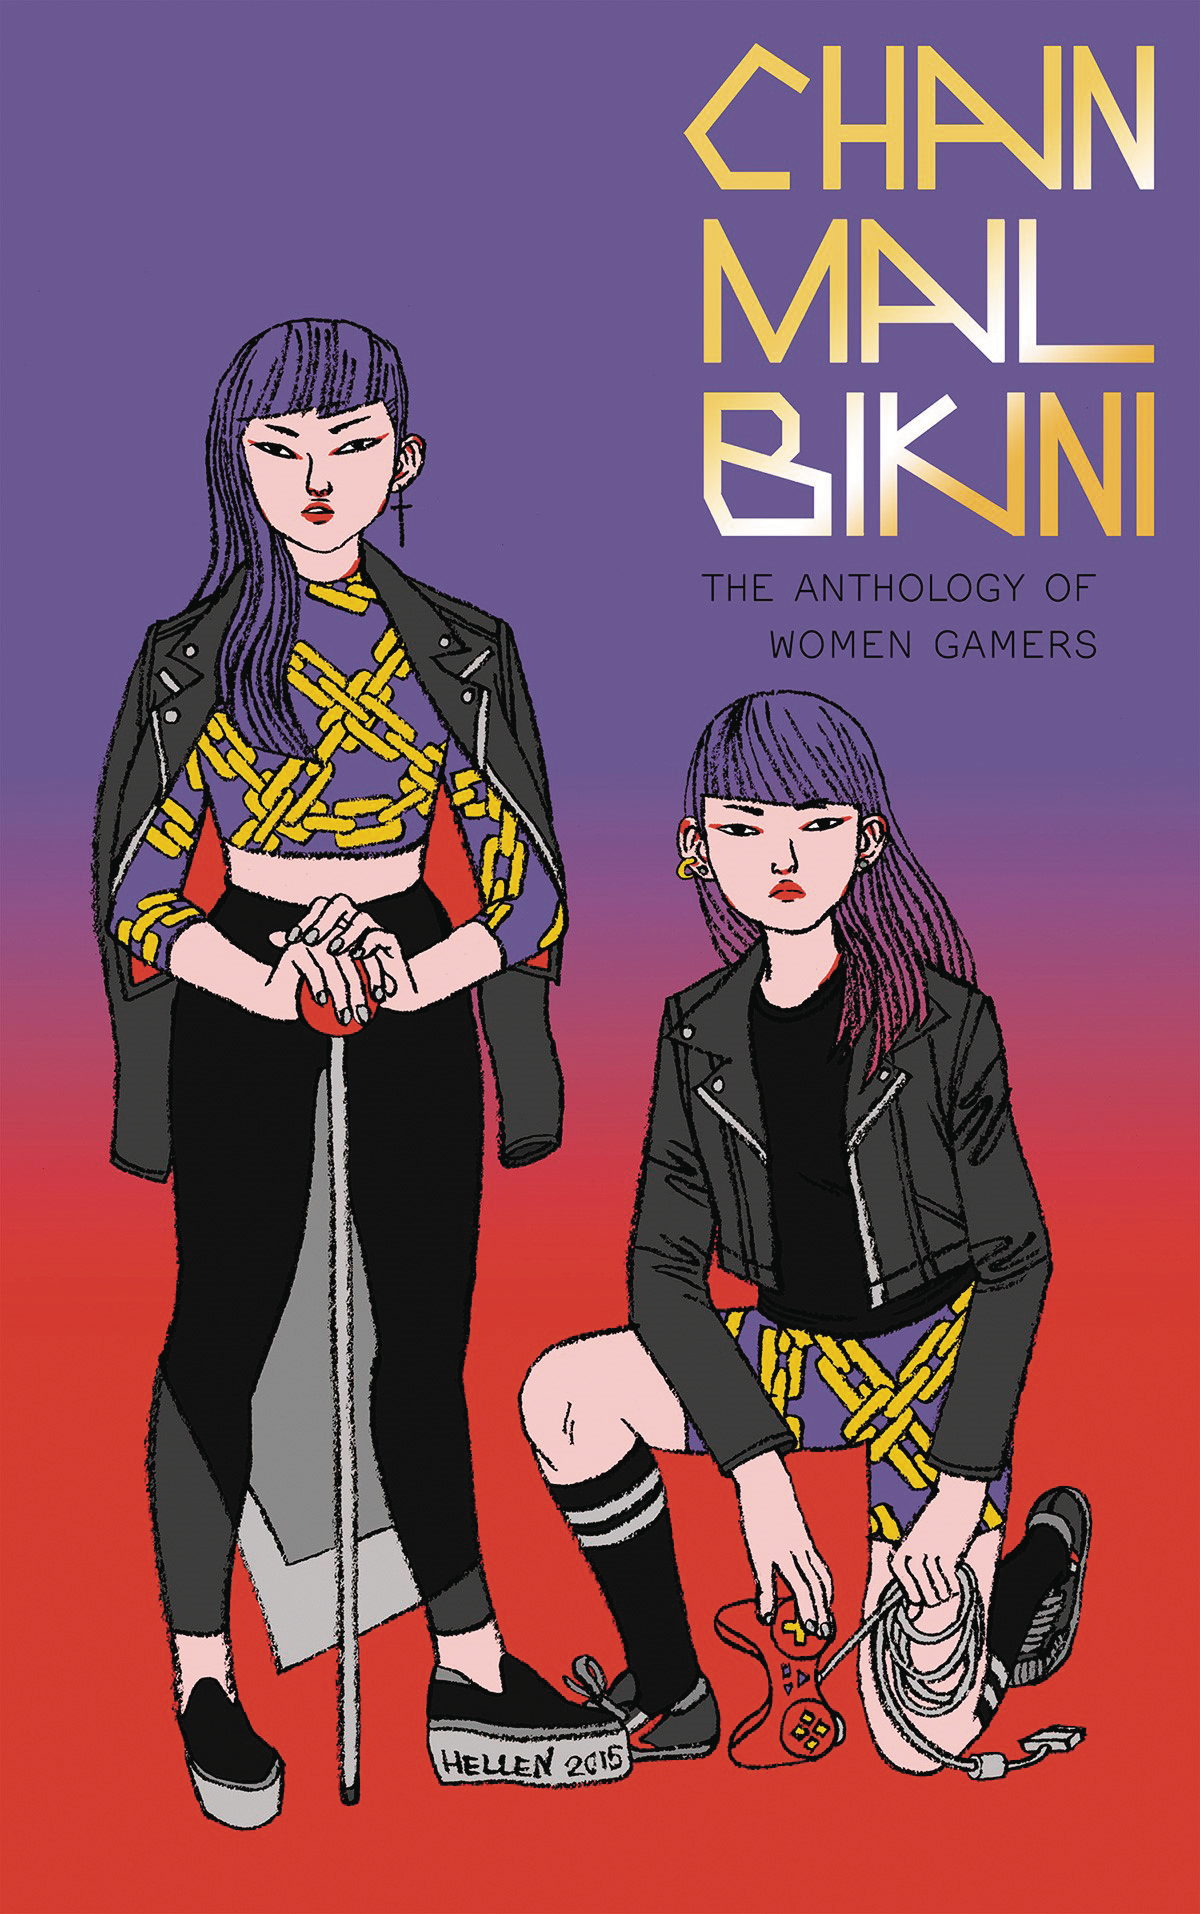 CHAINMAIL BIKINI ANTHOLOGY OF WOMEN GAMERS